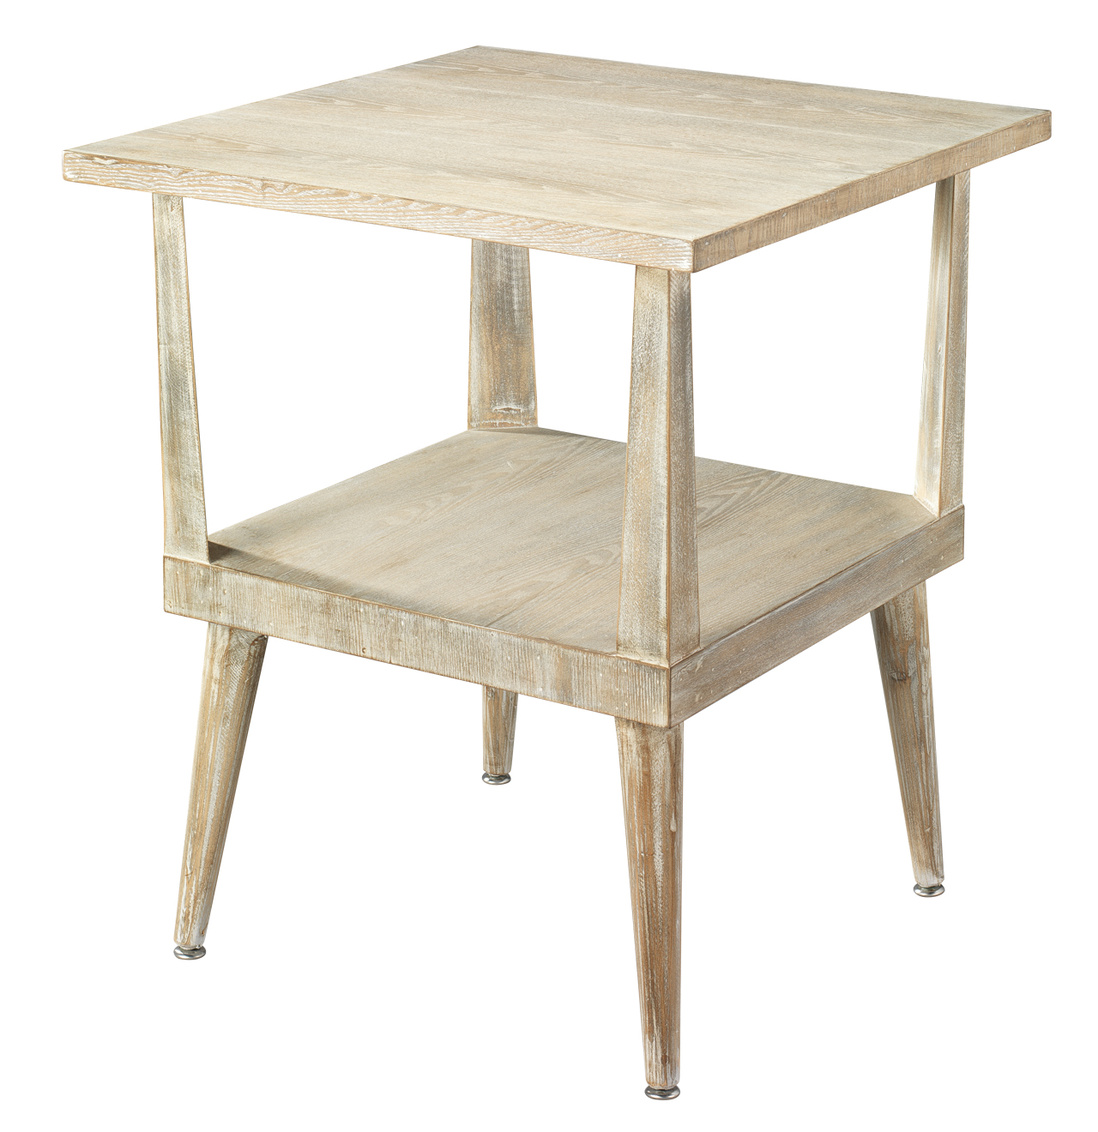 1709arlosidetable greywashedwood